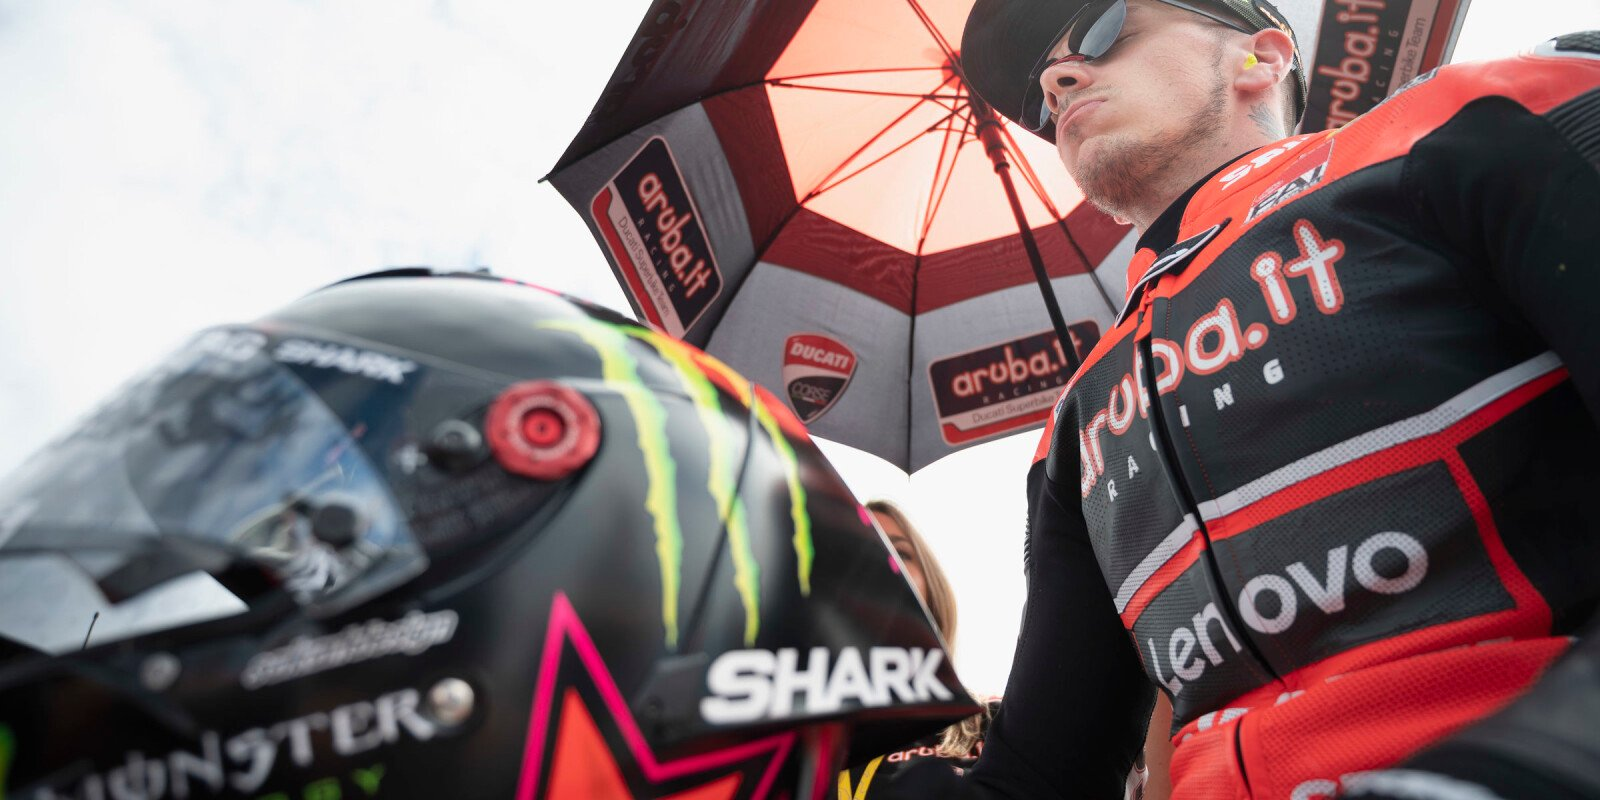 Saturday images from round 1 of the 2020 WSBK Championship